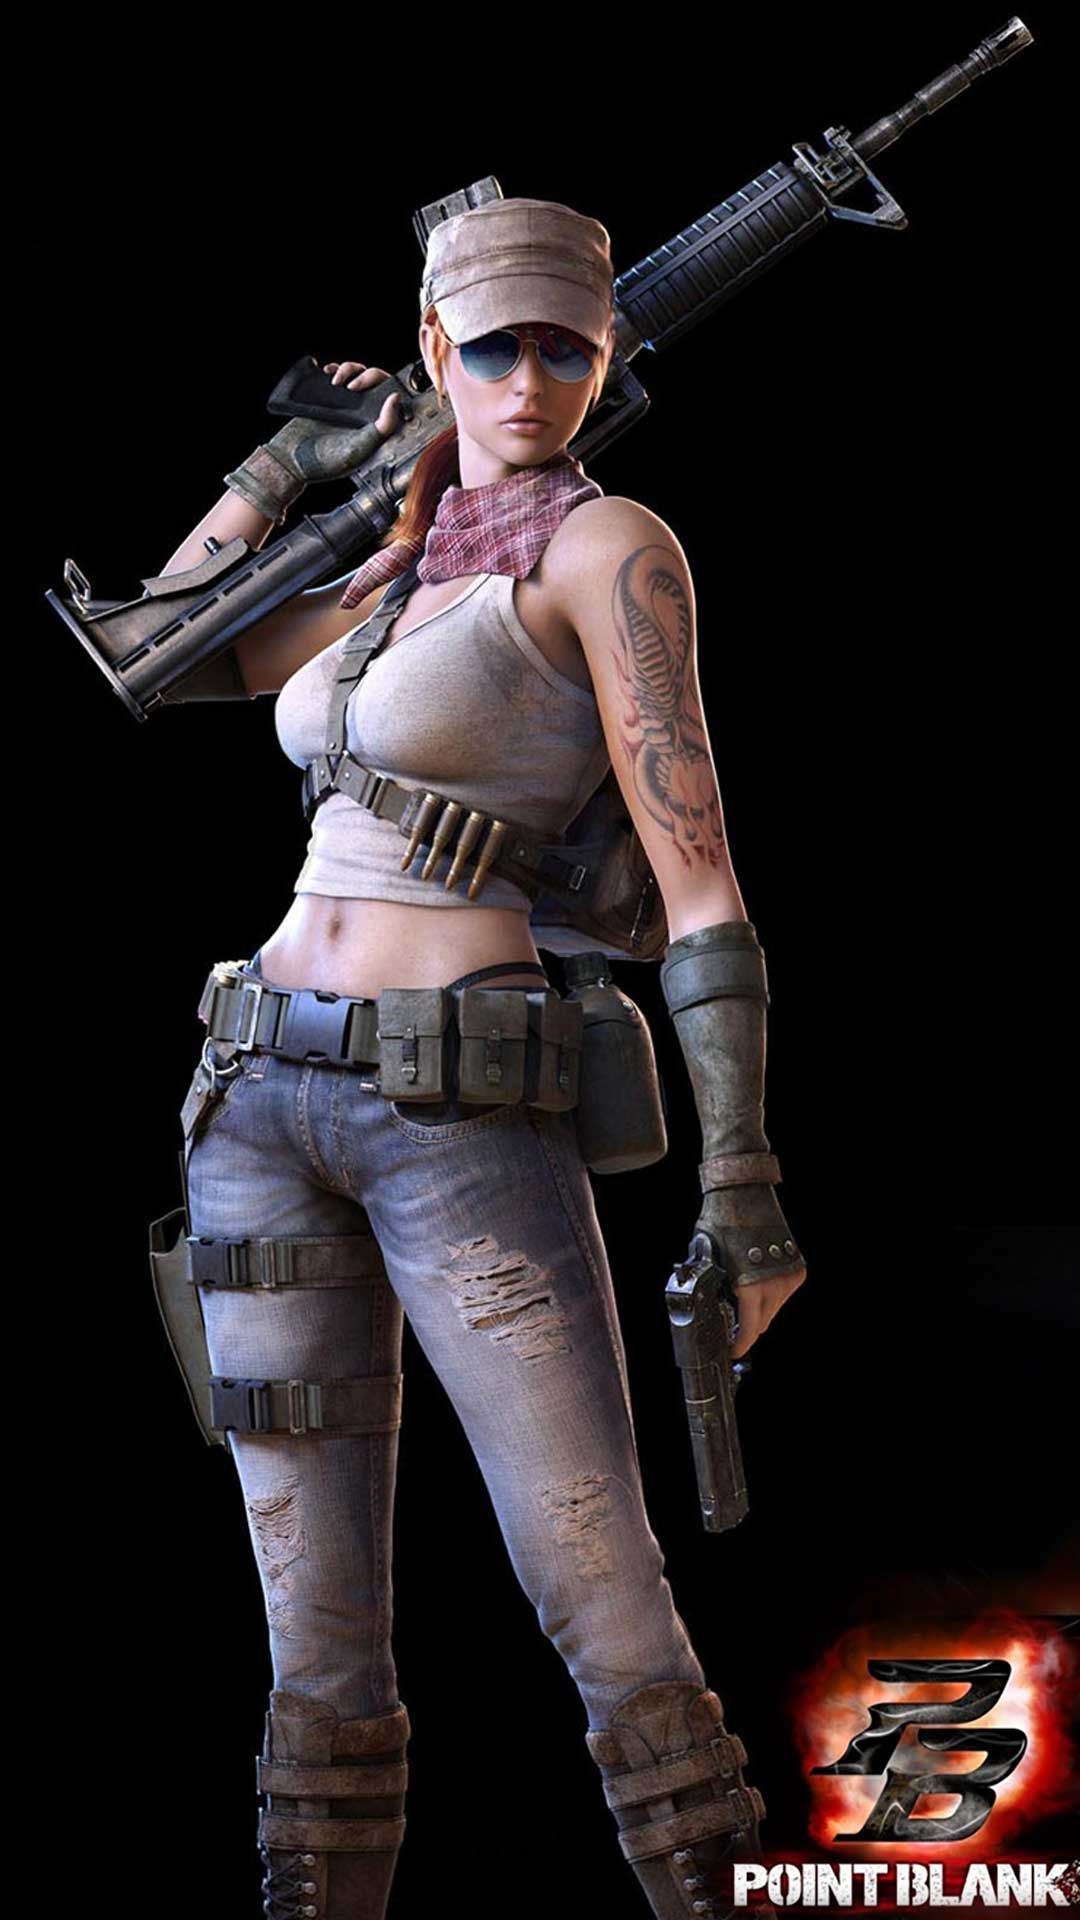 Point Blank Wallpaper Character : point, blank, wallpaper, character, Point, Blank, Wallpaper, Phone, Backgrounds, Zepetto, Character, IPhone, Android, Screen, Wallpaper,, Screen,